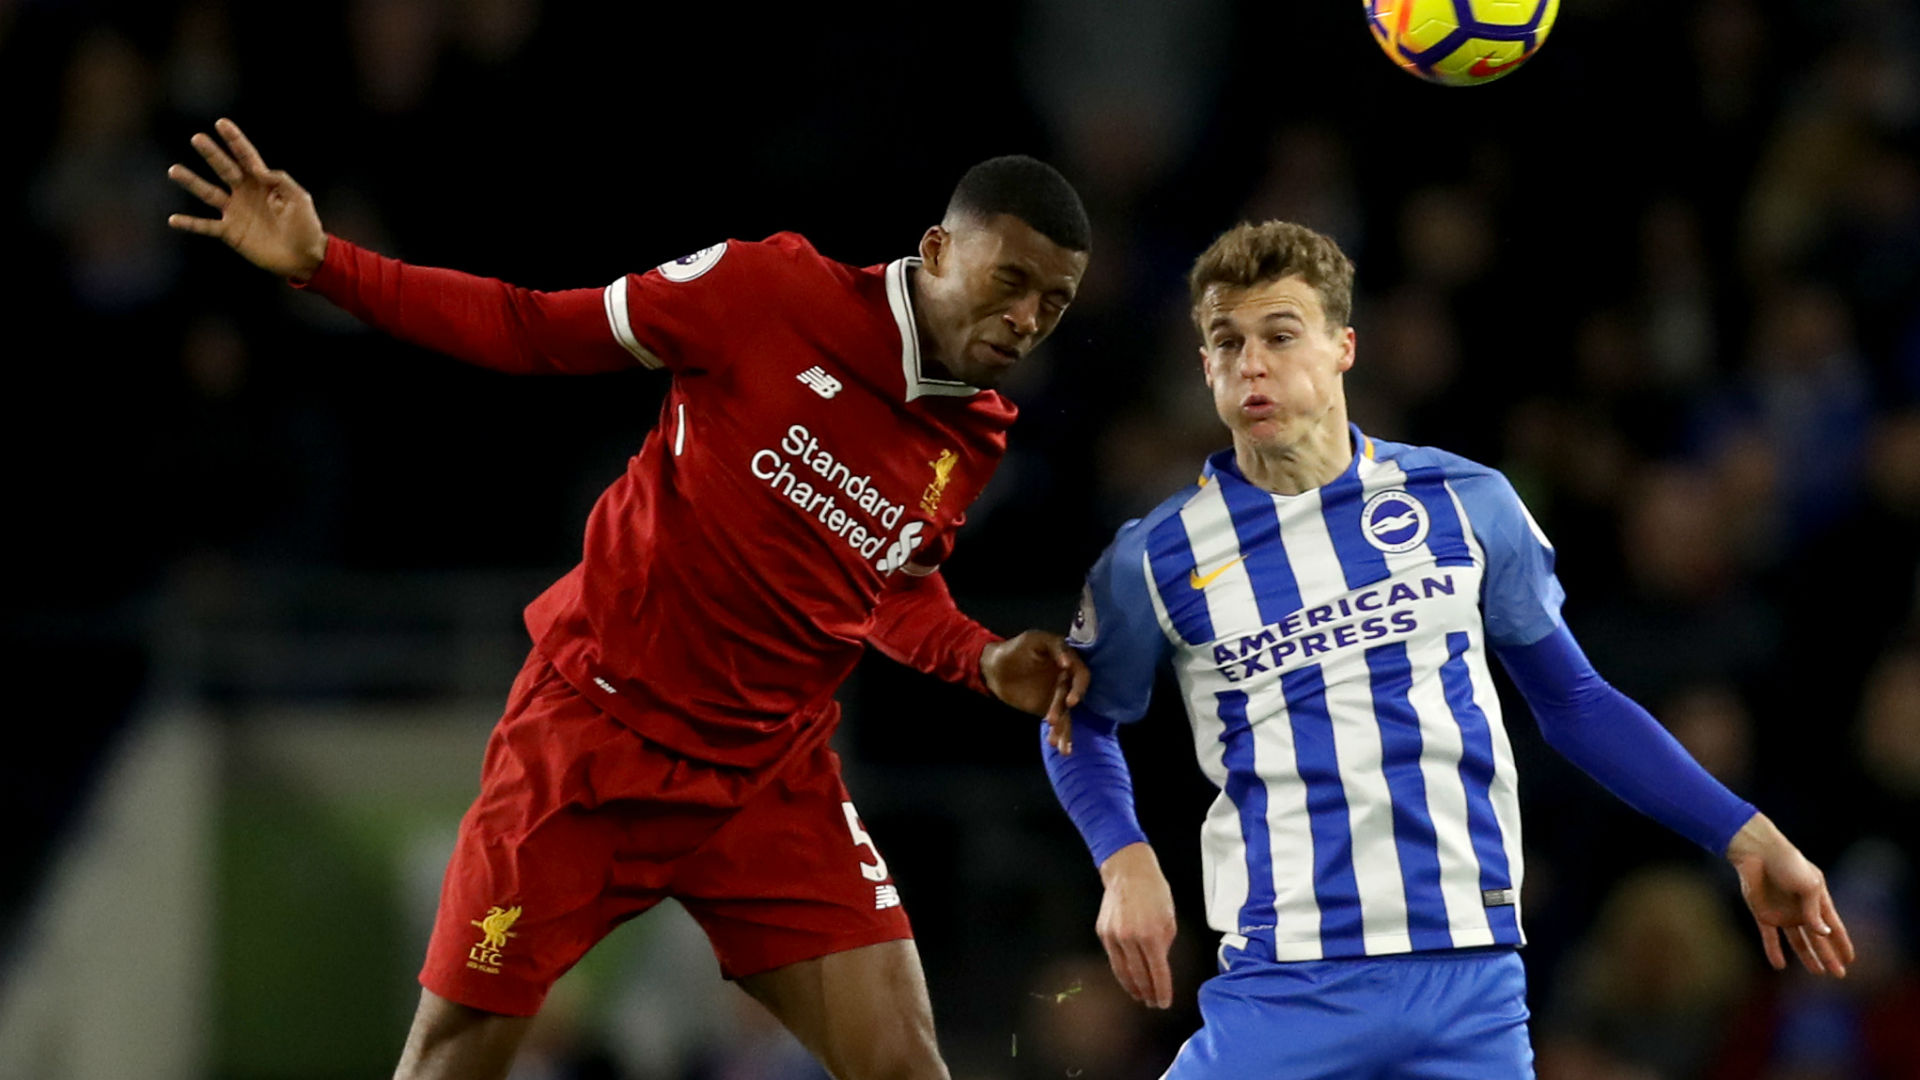 Brighton and Hove Albion v Liverpool - fans' view